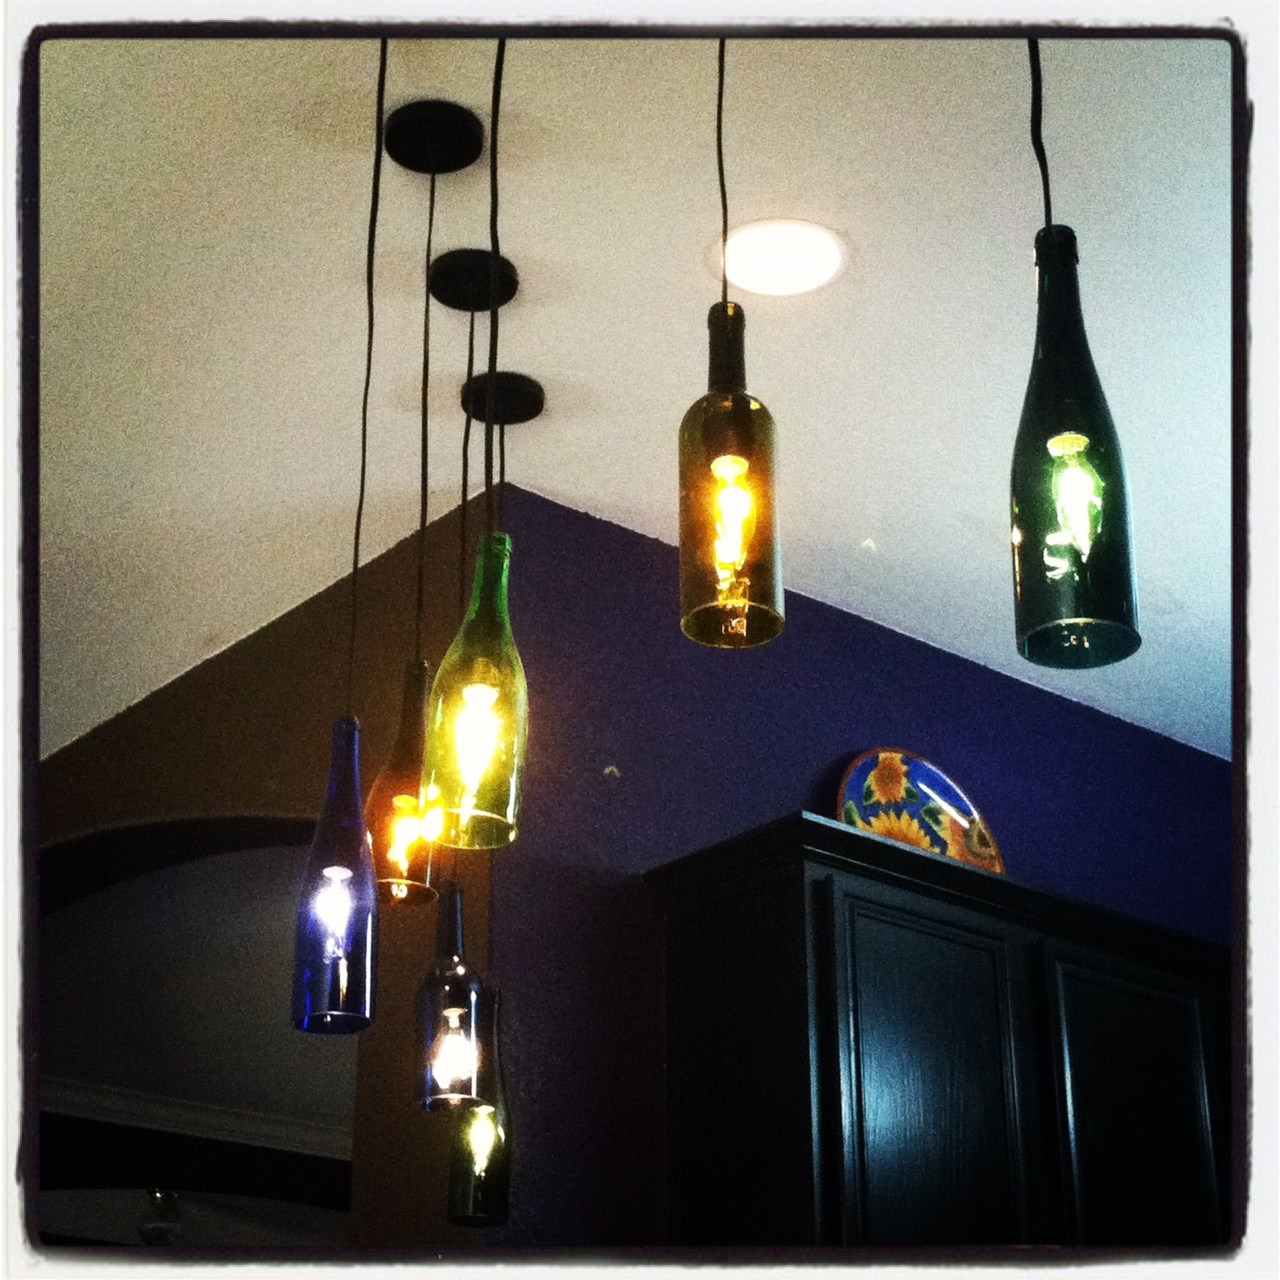 The half assed decorator ultra cool wine bottle light fixtures - Wine bottle light fixtures ...